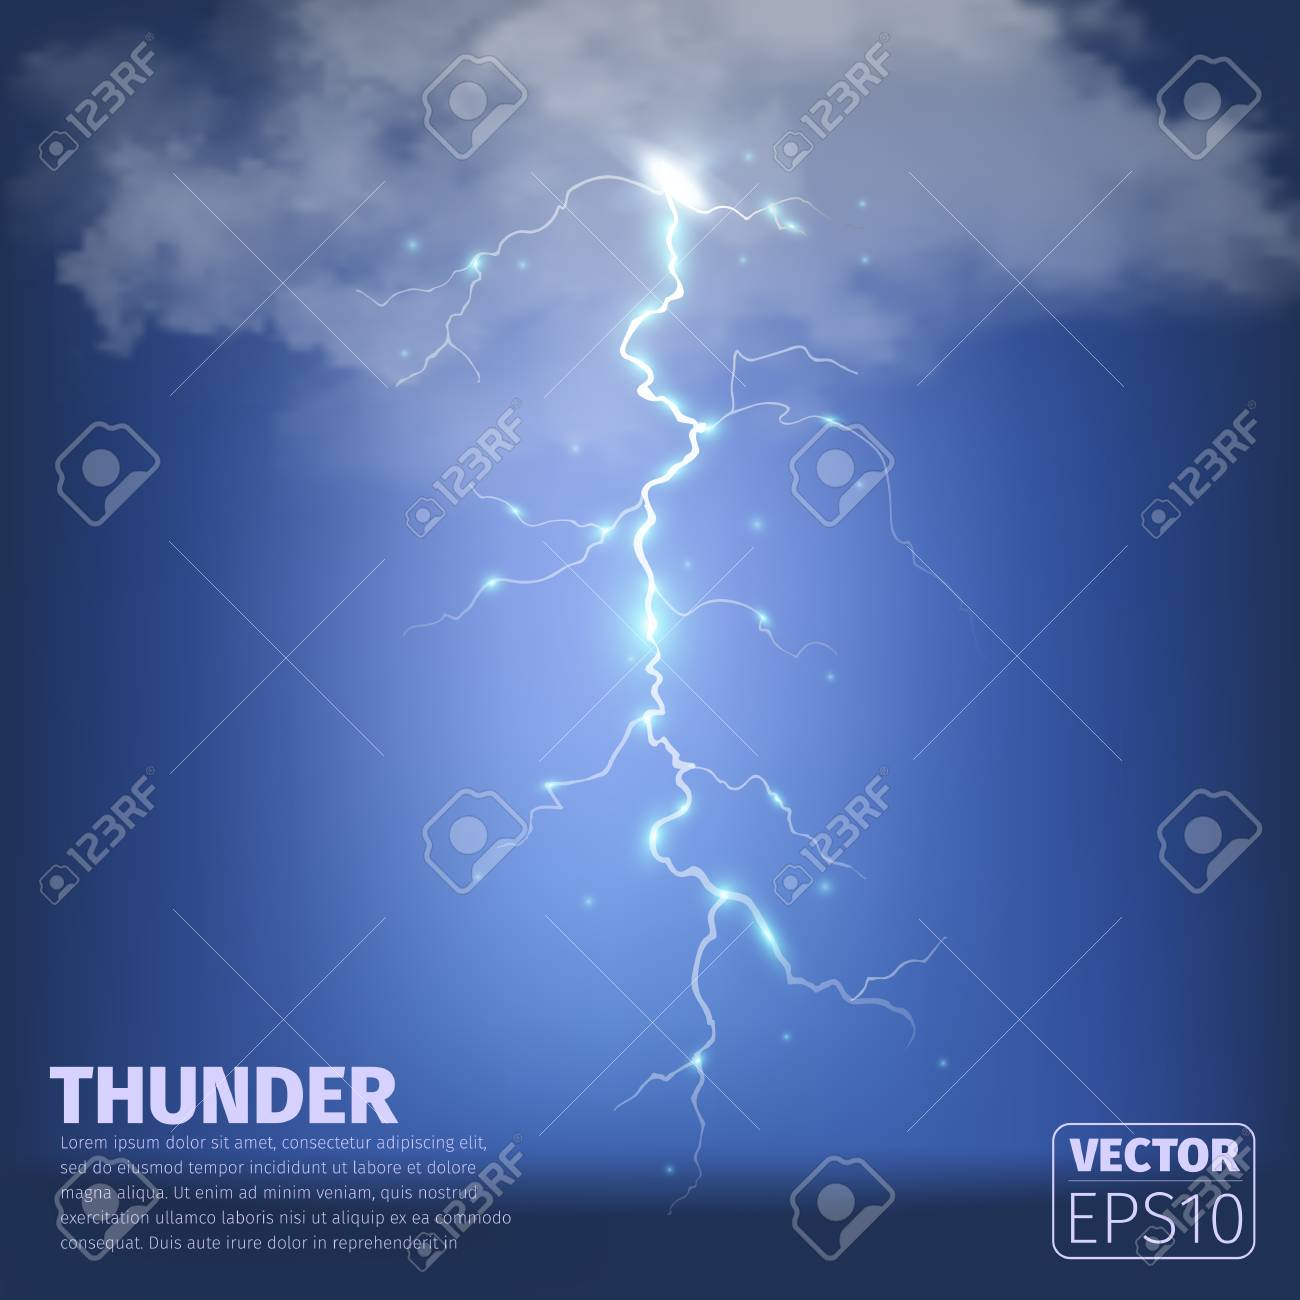 Realistic thunderstorm background with clouds  Vector illustration